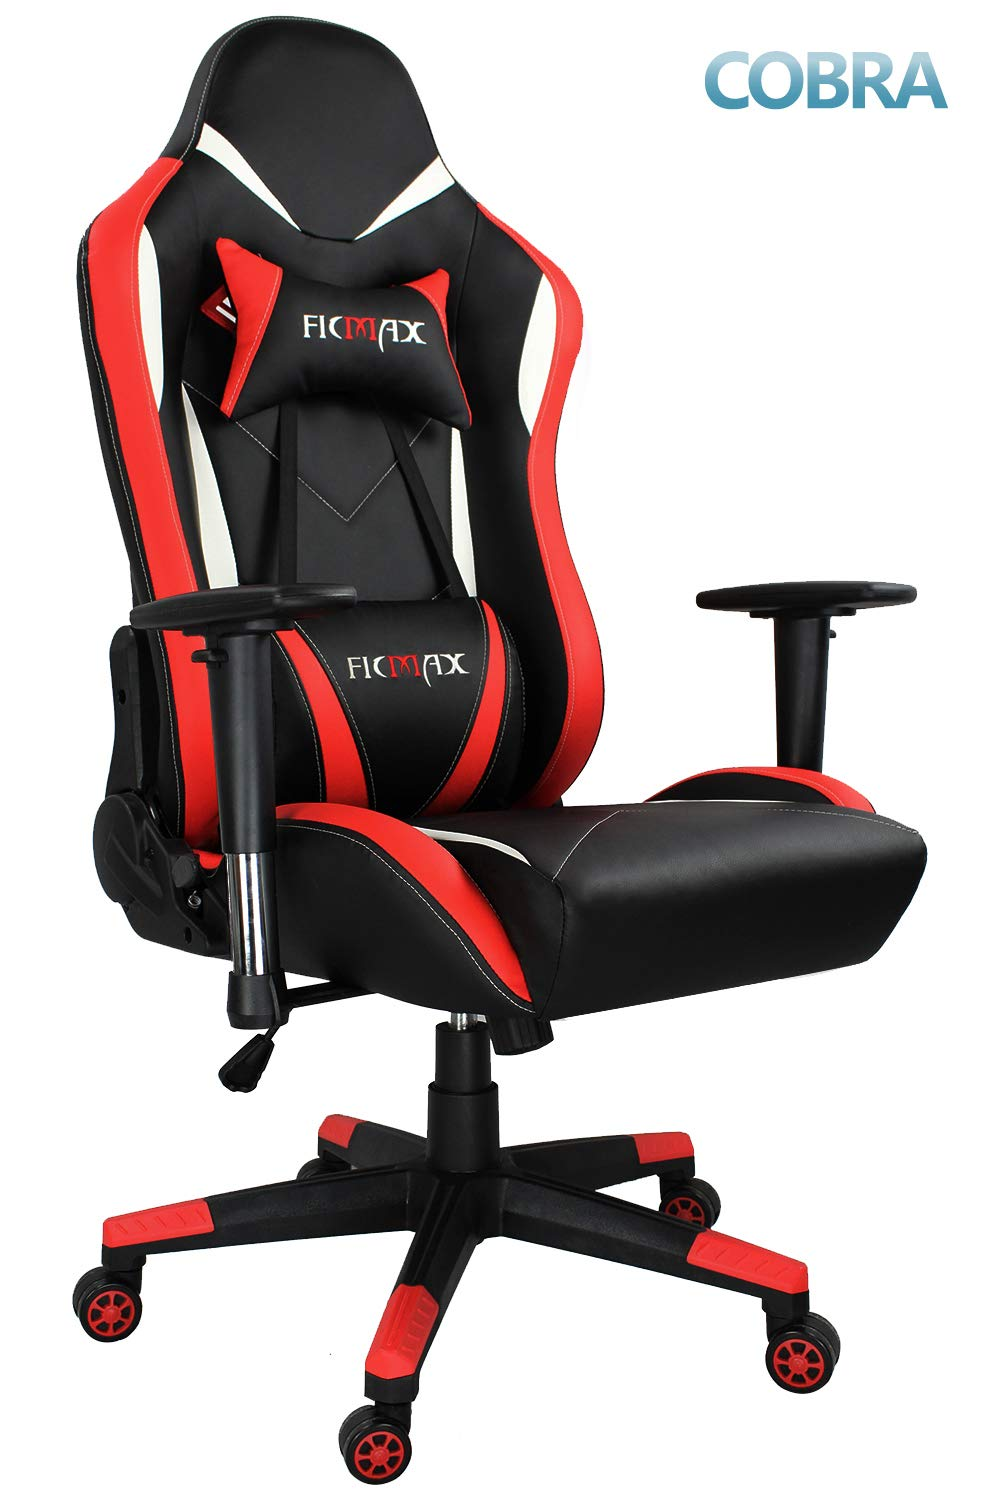 Ficmax Large Size High-Back Ergonomic Gaming Chair Racing Seat with USB Massaging Lumbar Support, Red/Black Ficamx